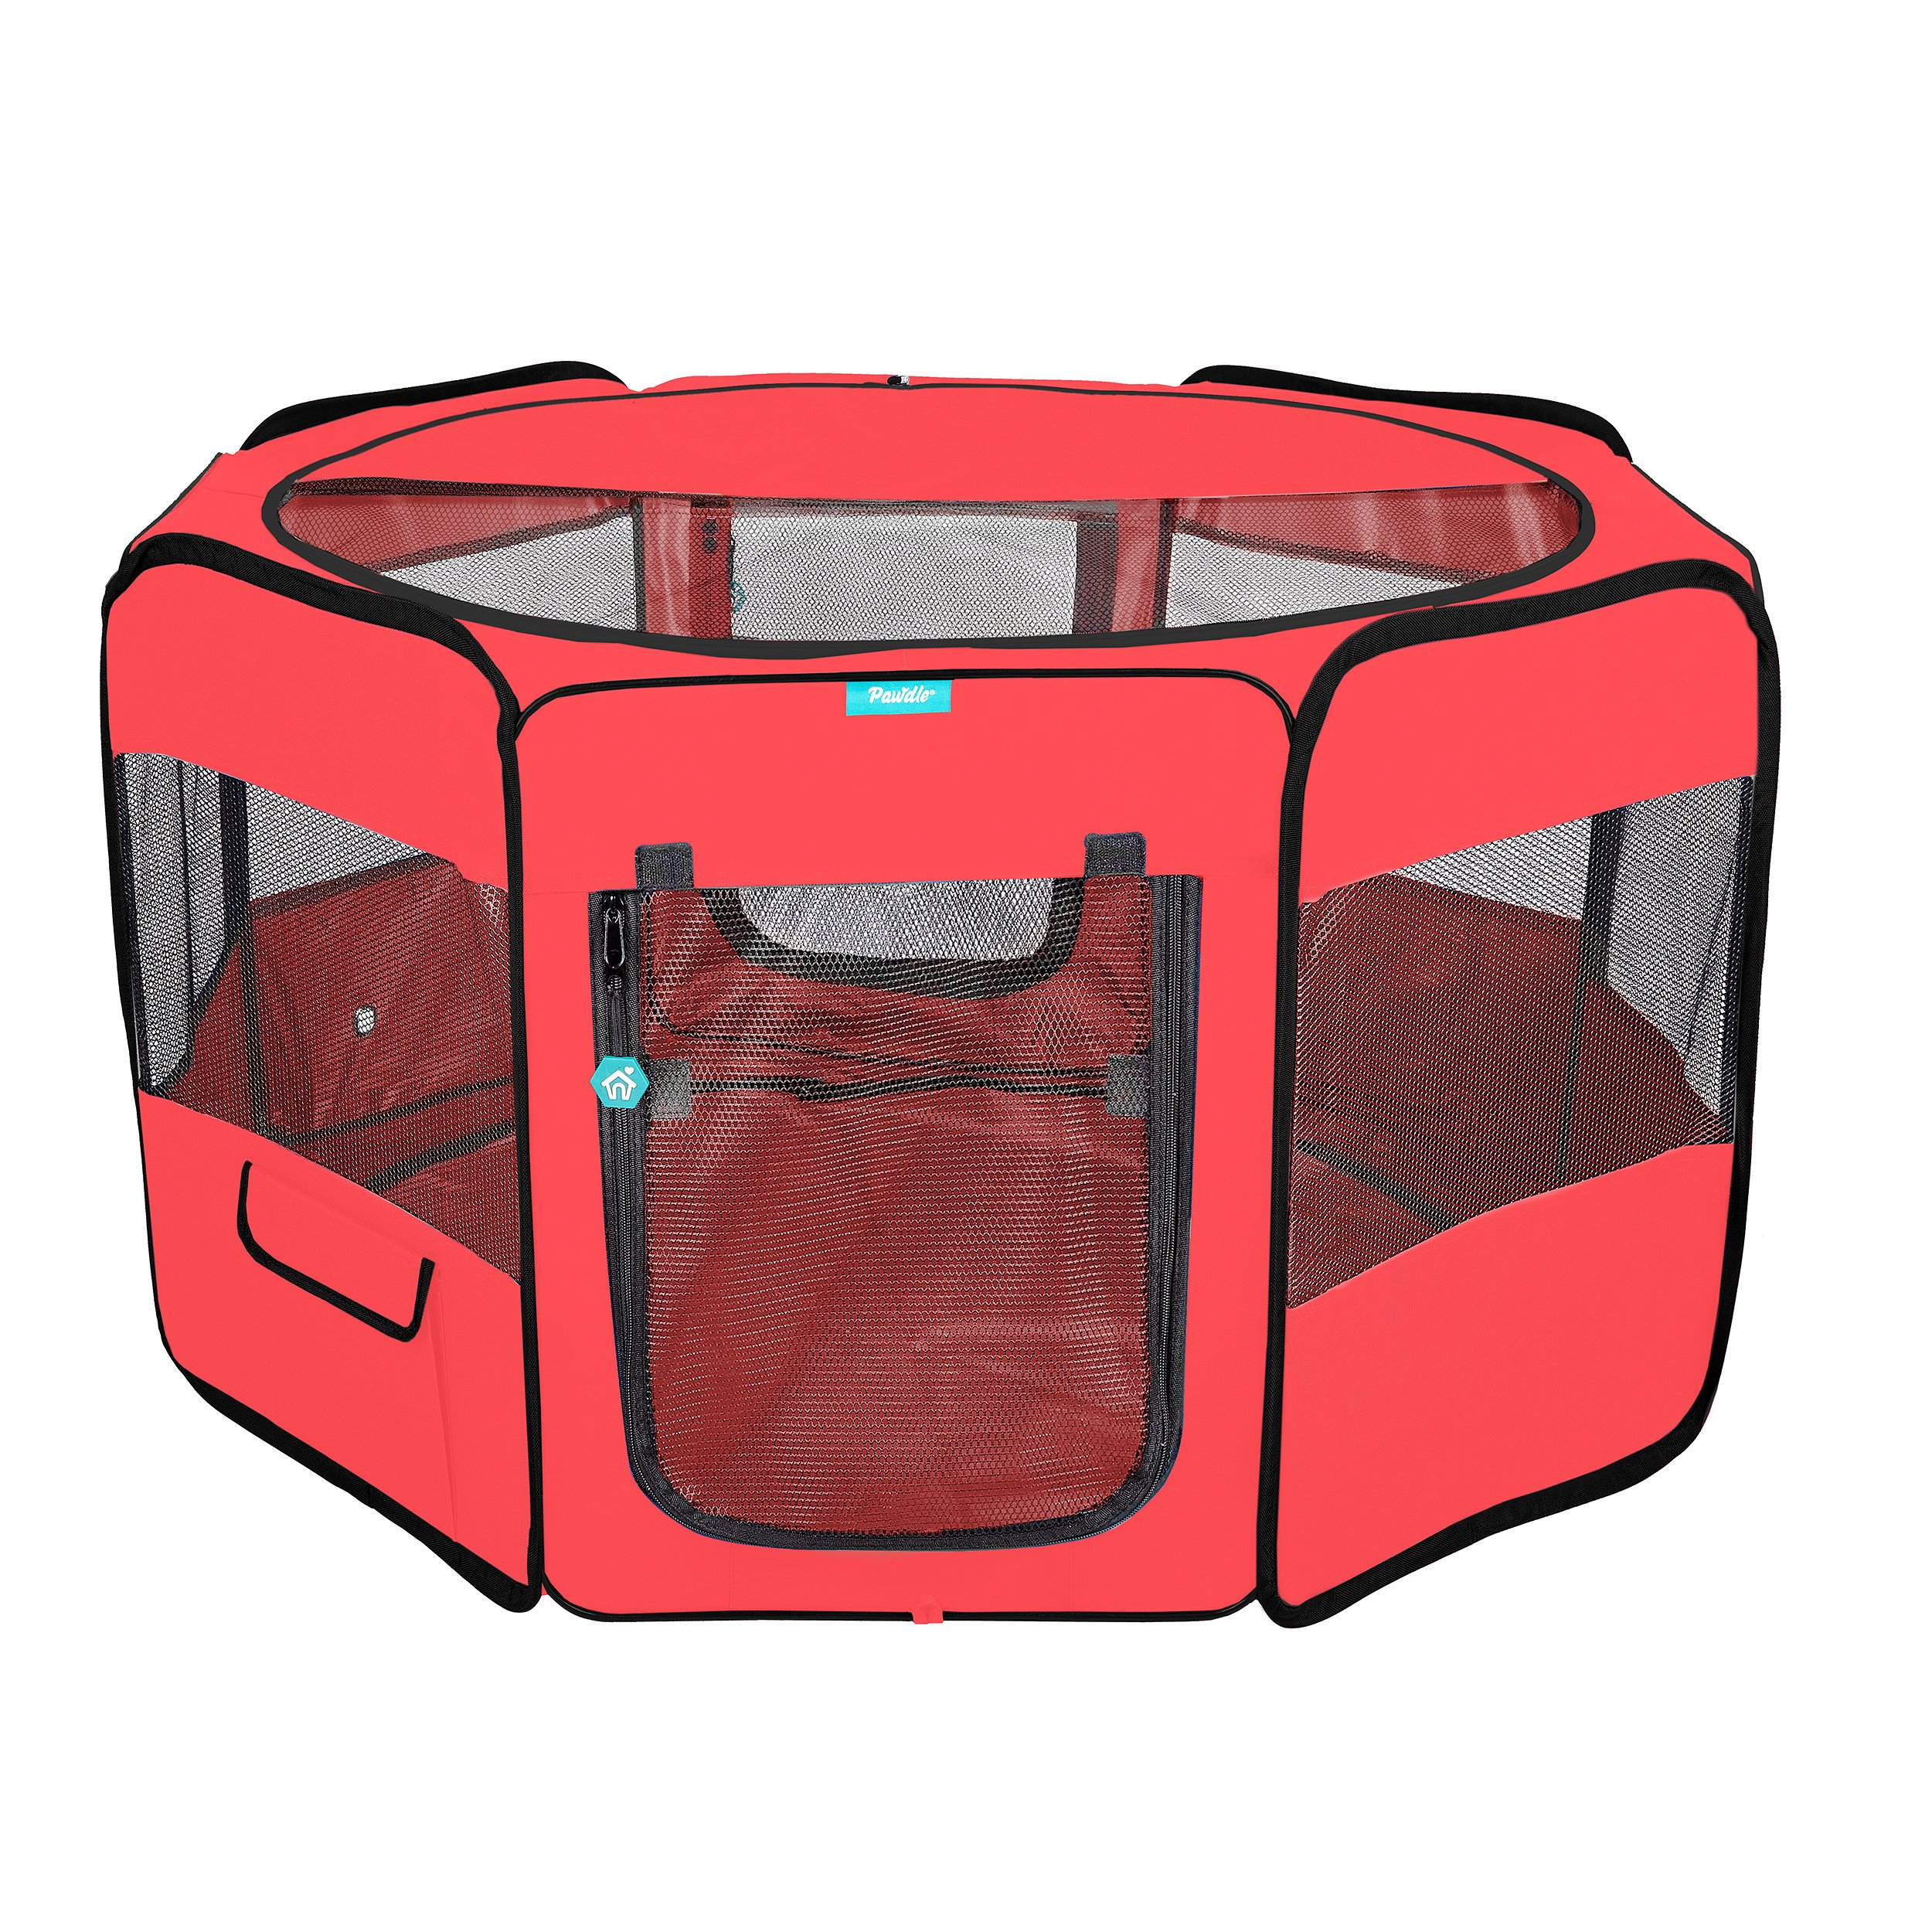 Deluxe Premium Pet Dog Playpen Portable Soft Dog Exercise Pen Kennel with Carry Bag for Dogs, Cats, Kittens, and All Pets (Large, Red)